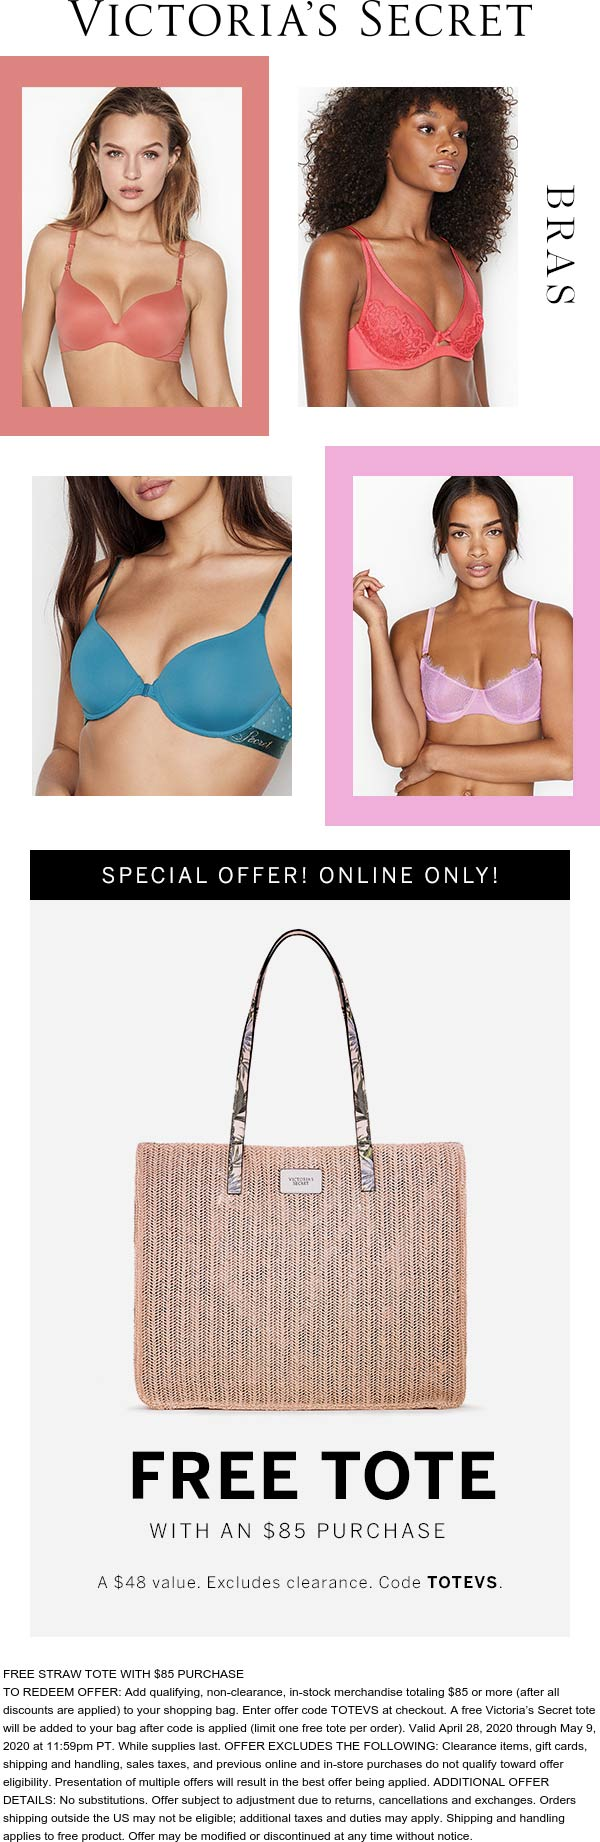 Free tote with $85 spent at Victorias Secret via promo code TOTEVS (05/09)